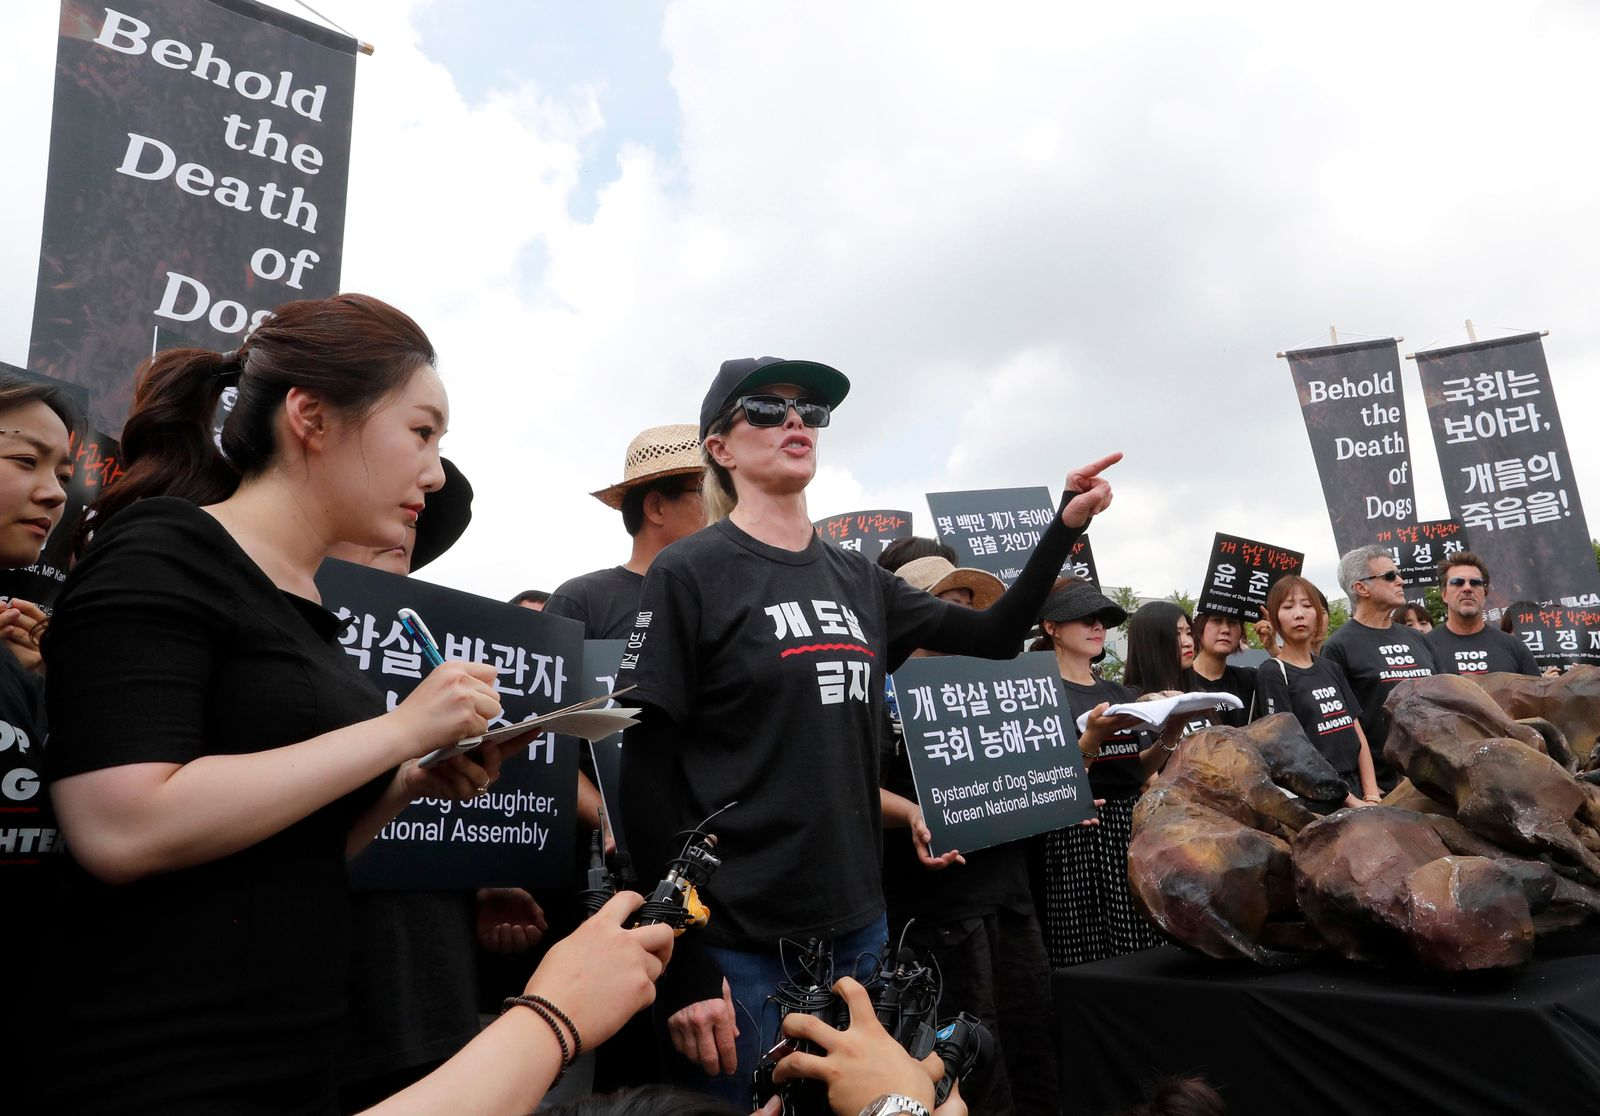 American actress Kim Basinger, center, speaks during a rally to oppose eating dog meat in front of the National Assembly in Seoul, South Korea, Friday, July 12, 2019. July 12 is the day South Koreans eat healthy foods such as dog meat in the belief it would help them survive heat during summer. (AP Photo/Ahn Young-joon)